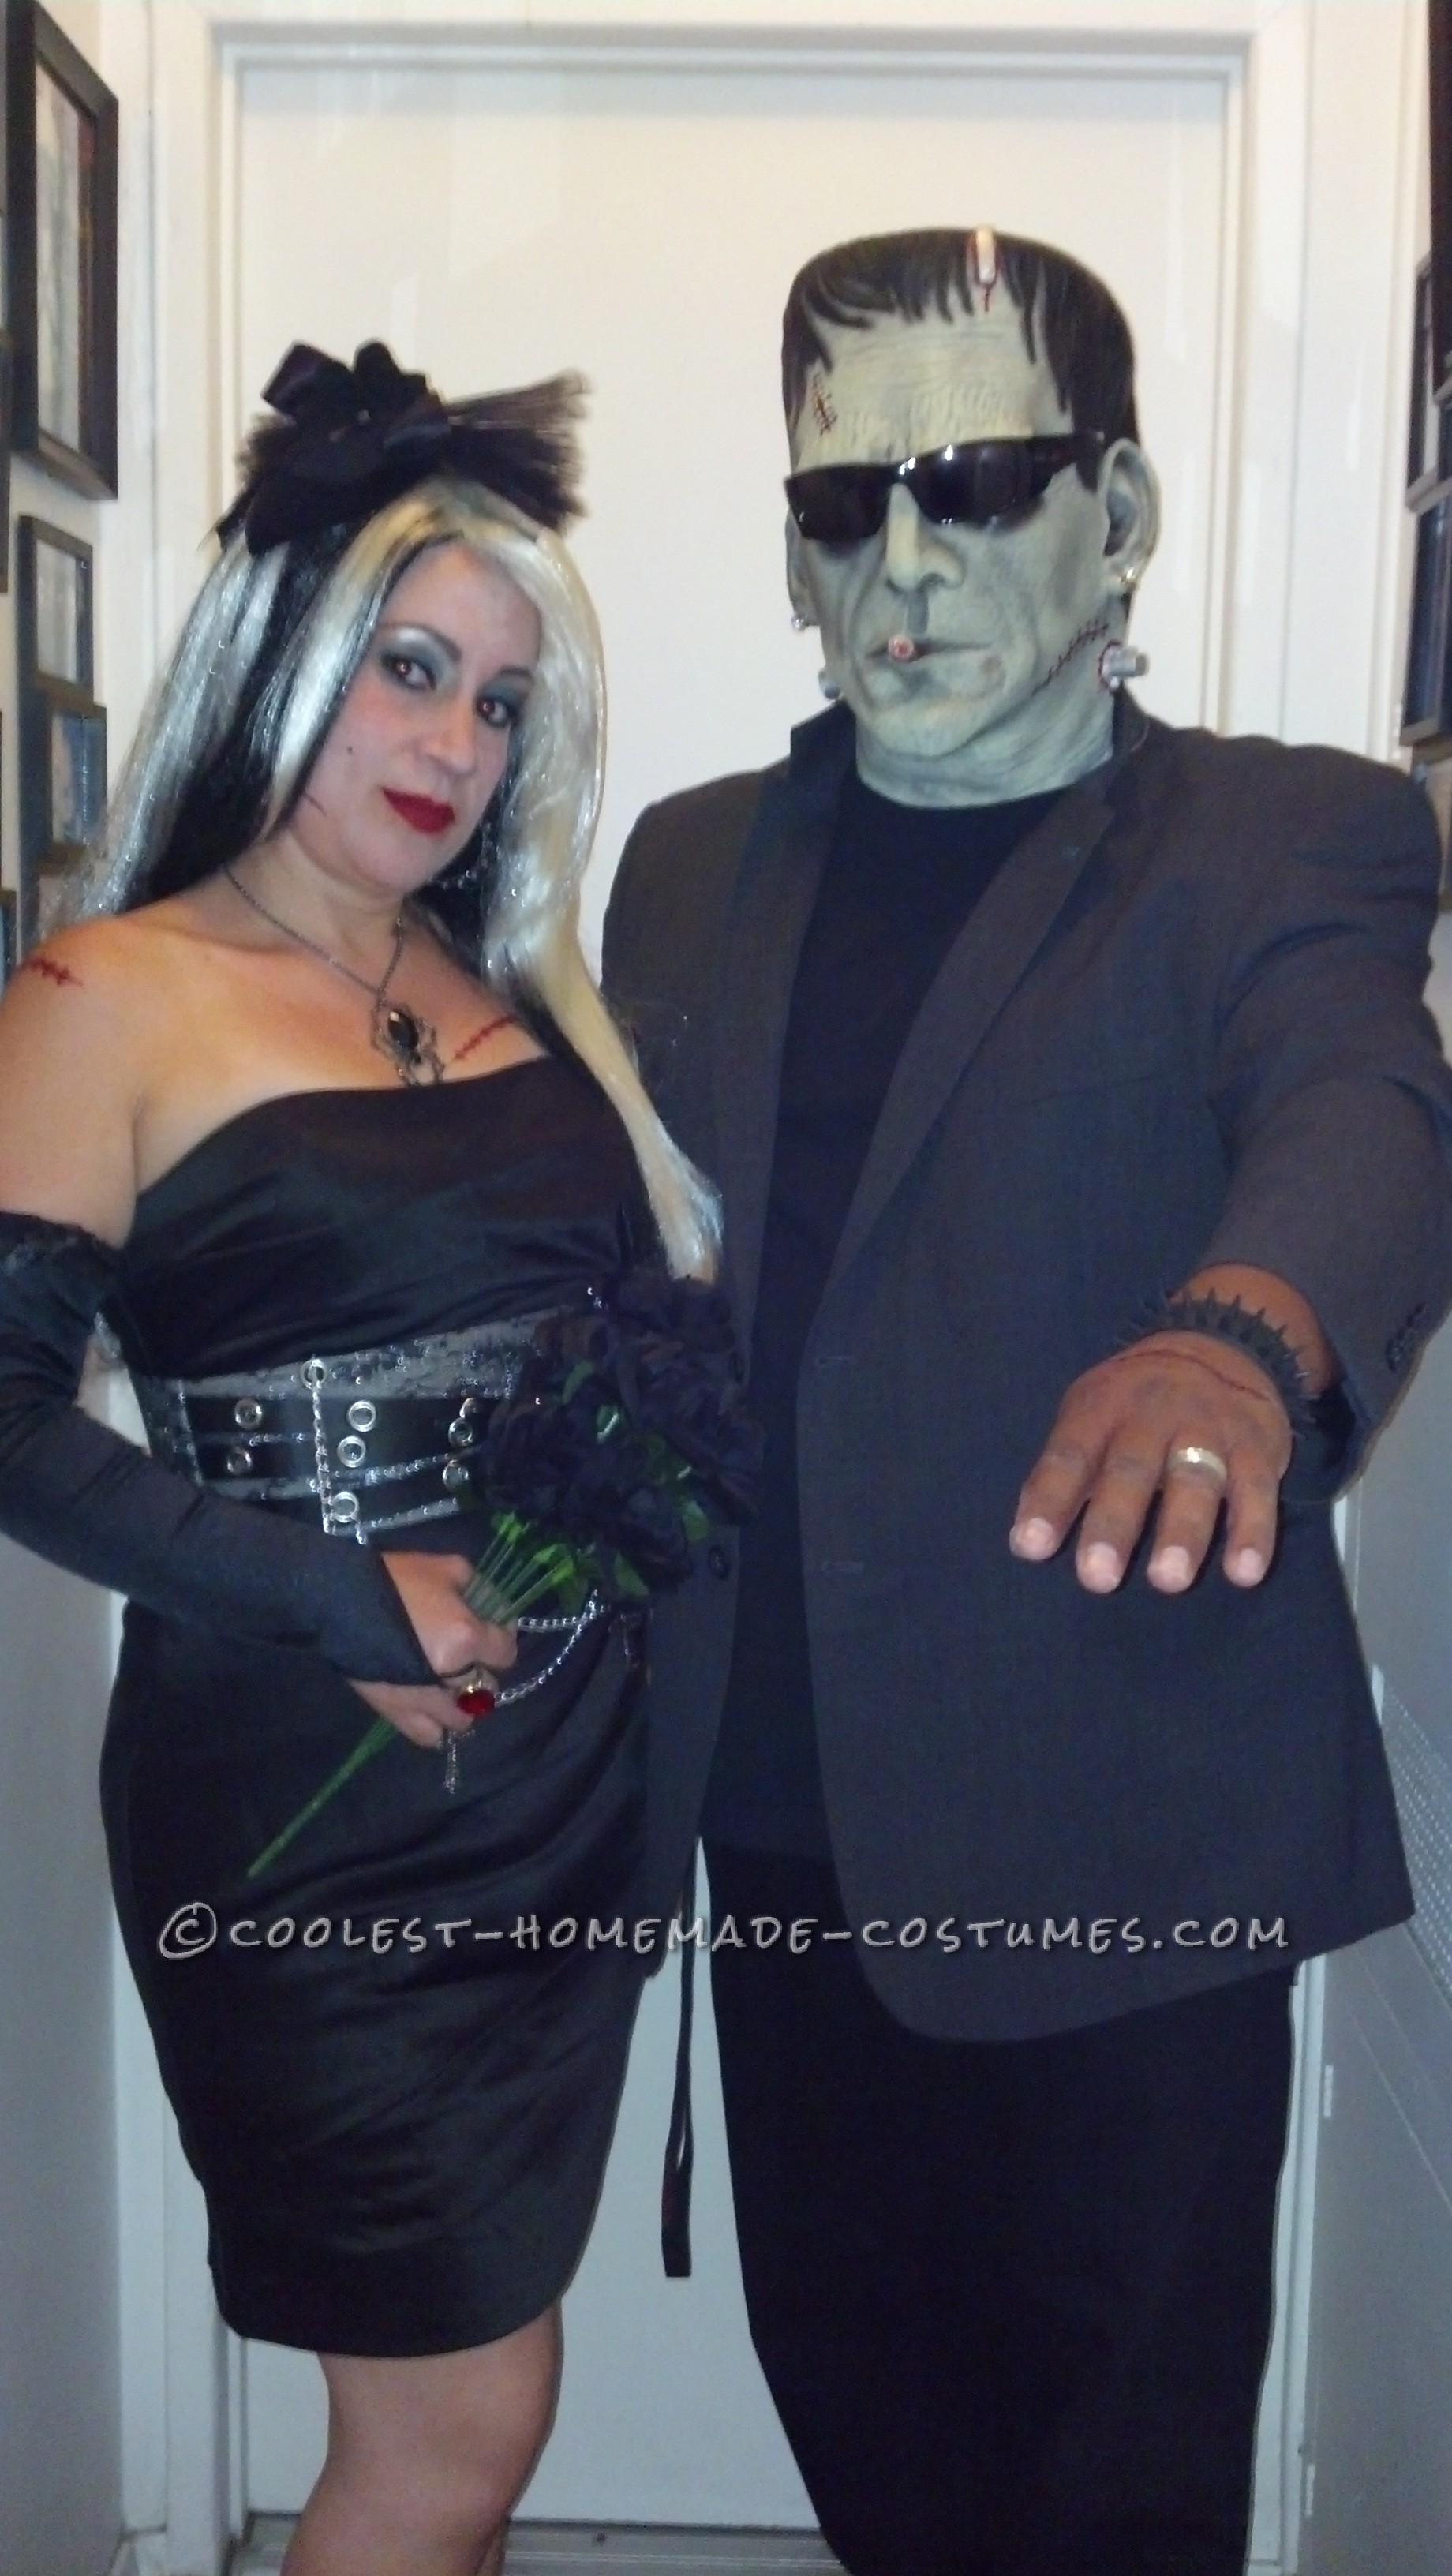 Modern Day Frankenstein and The Bride of Frankenstein Couple Costume